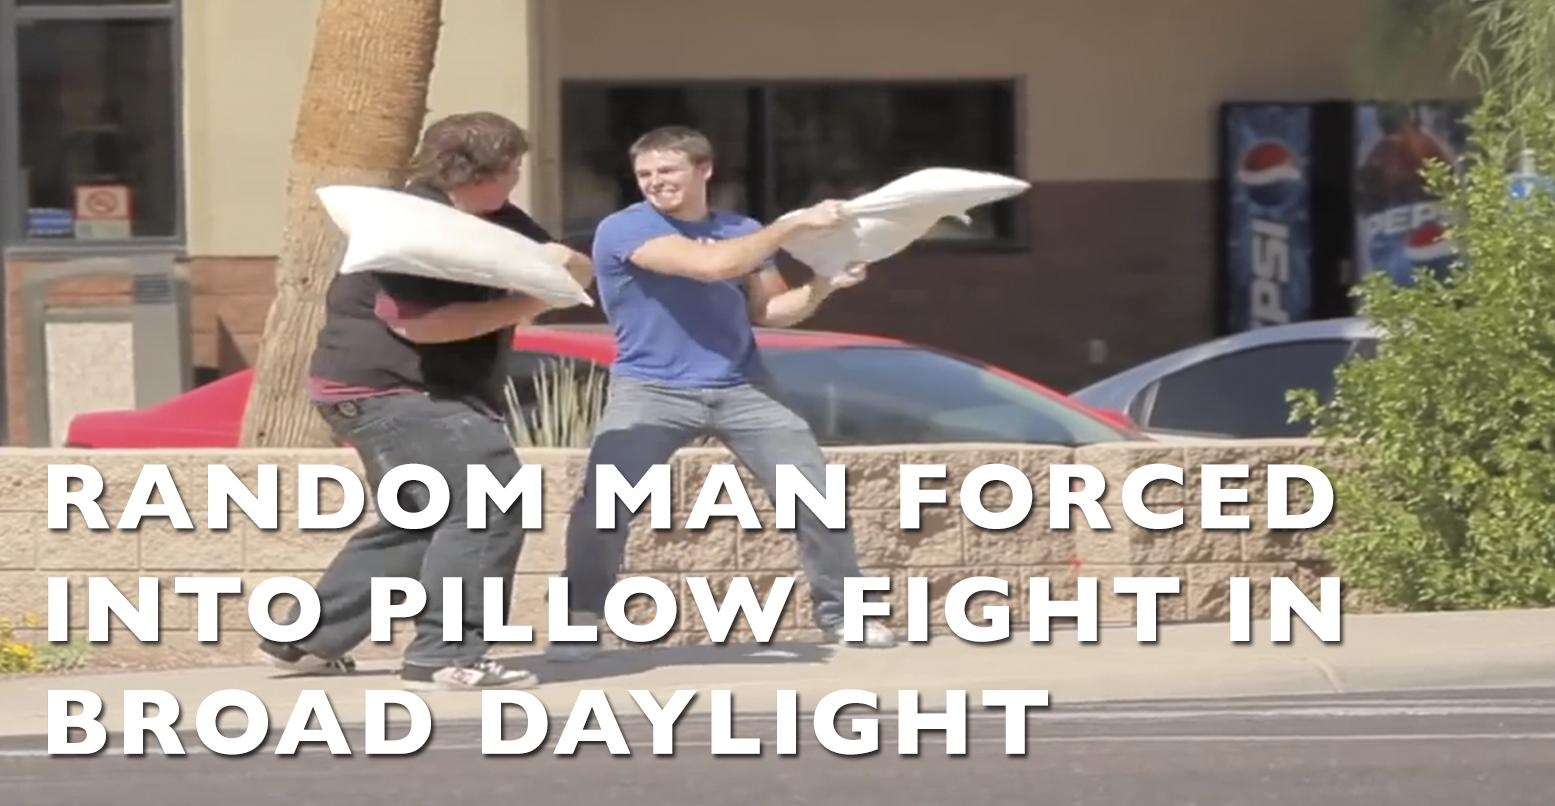 VIDEO: Random Man Forced Into Pillow Fight In Broad Daylight